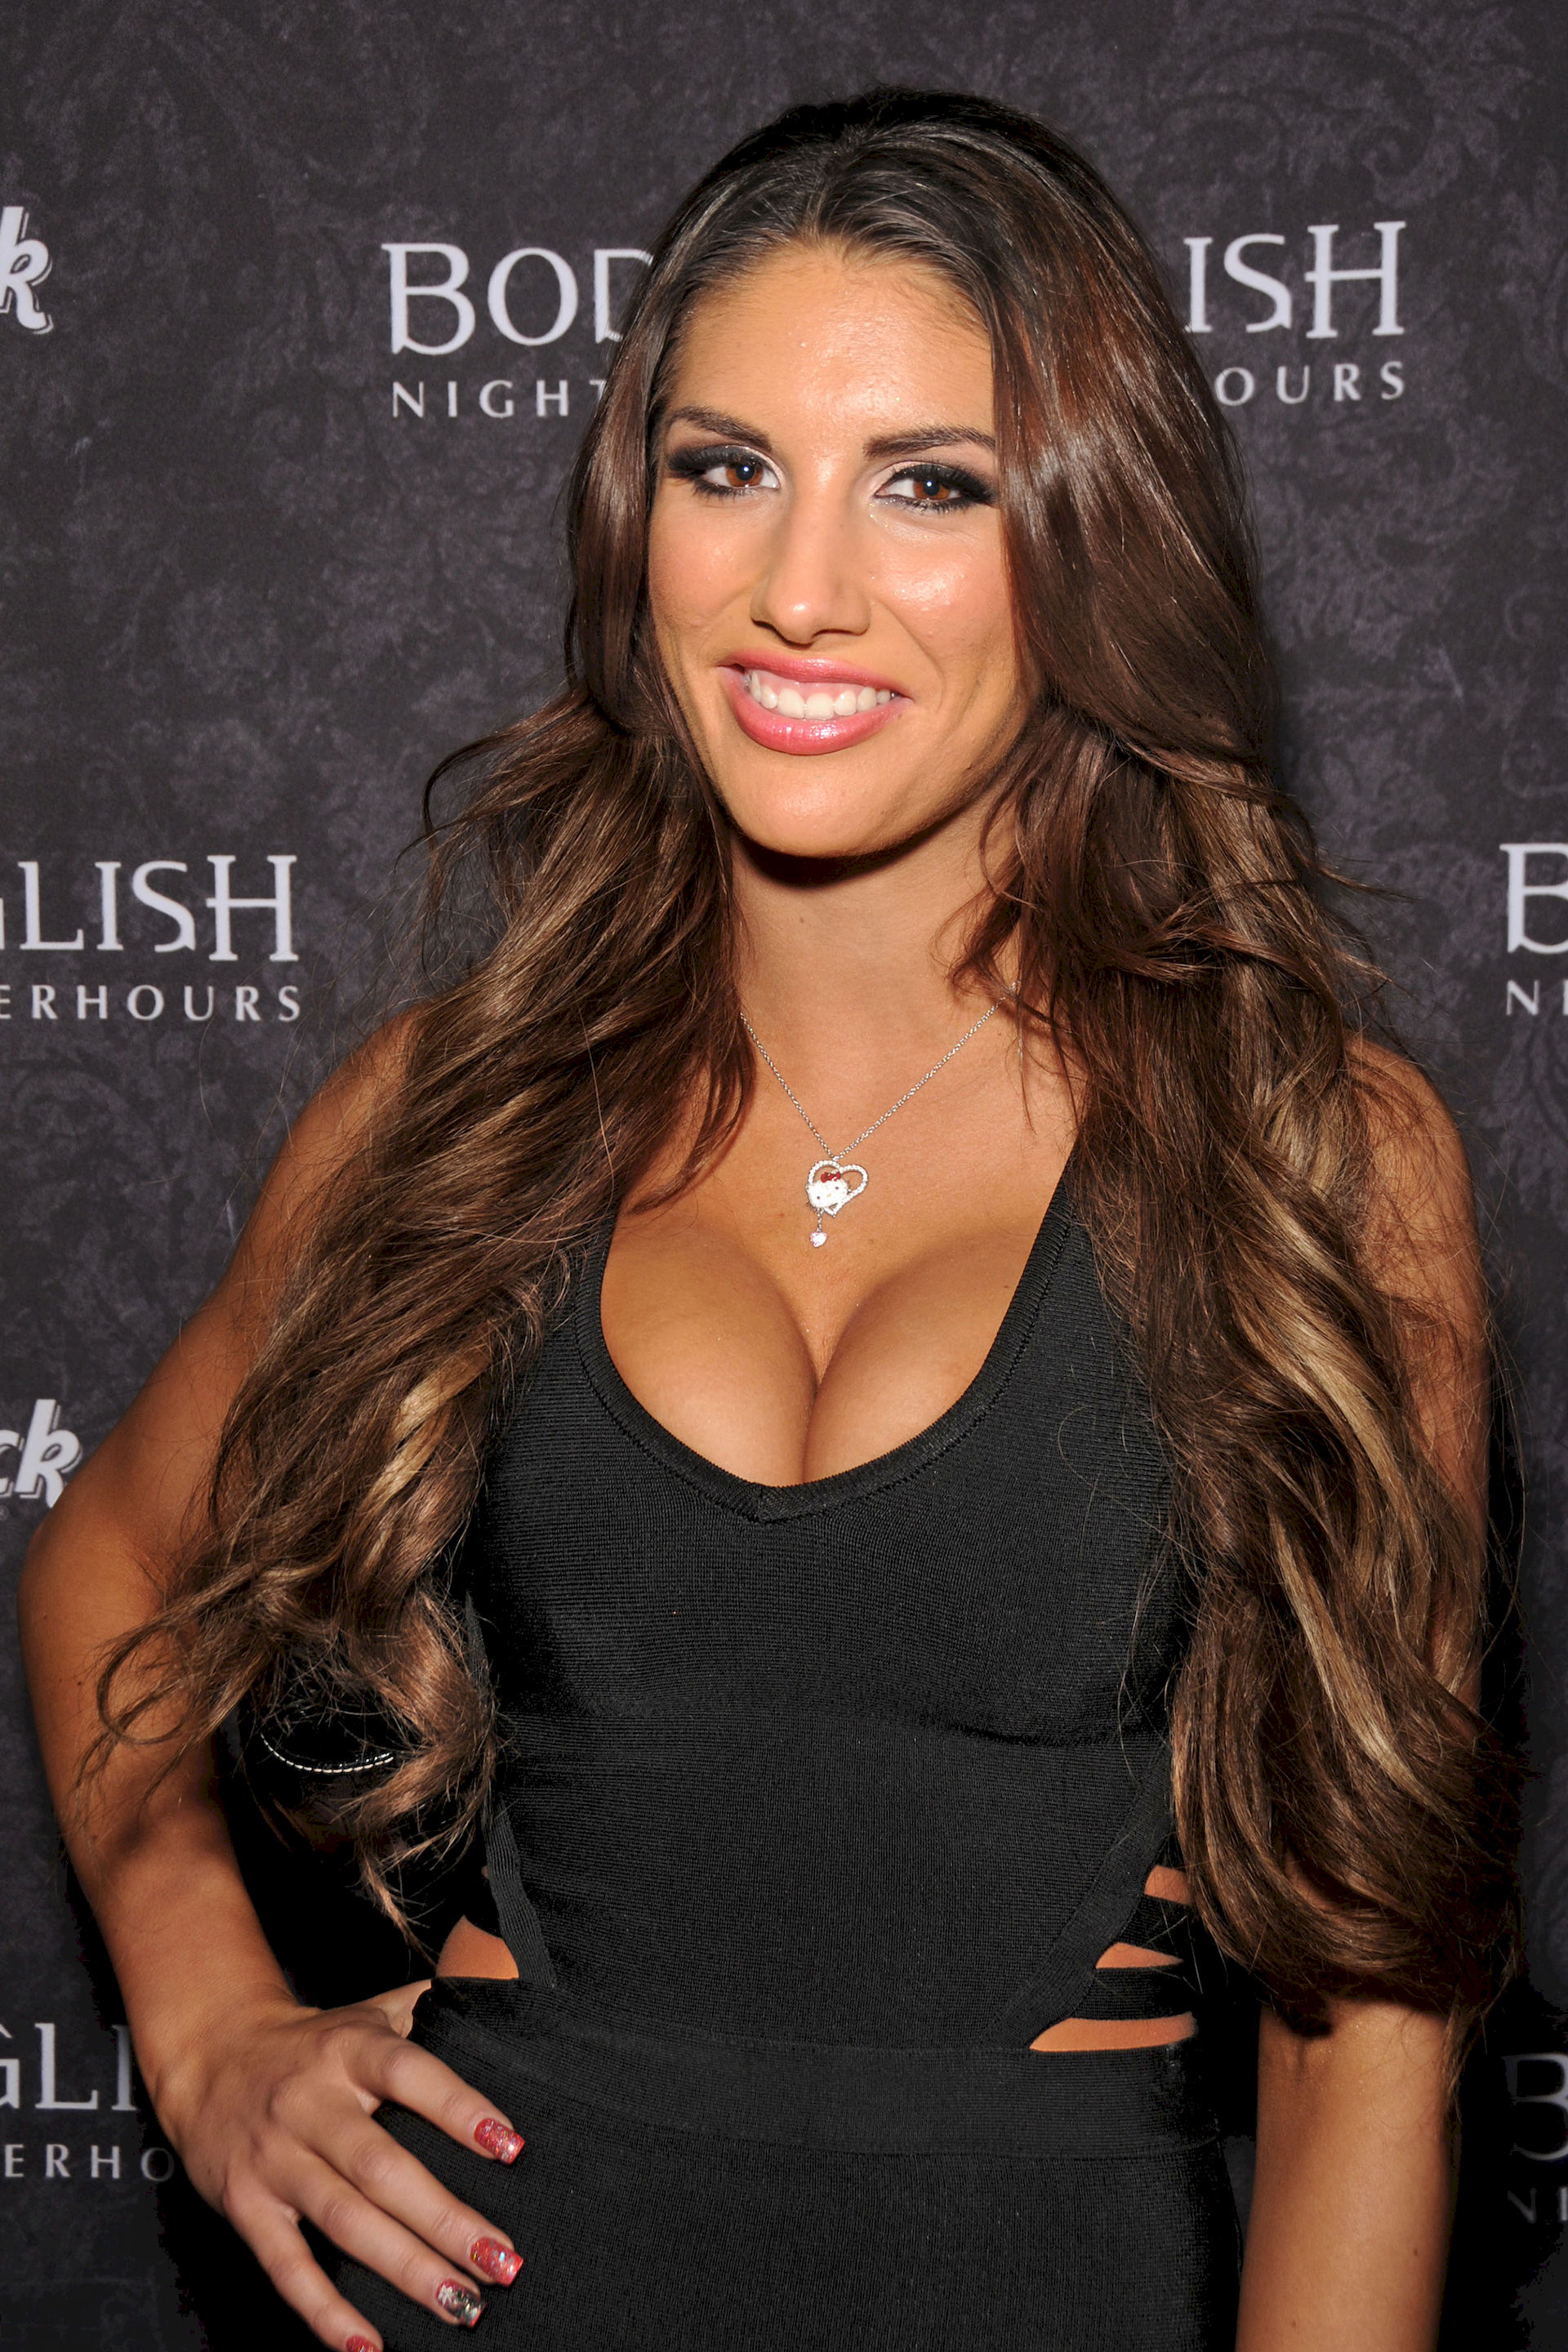 Photo of August Ames: Canadian pornographic actress